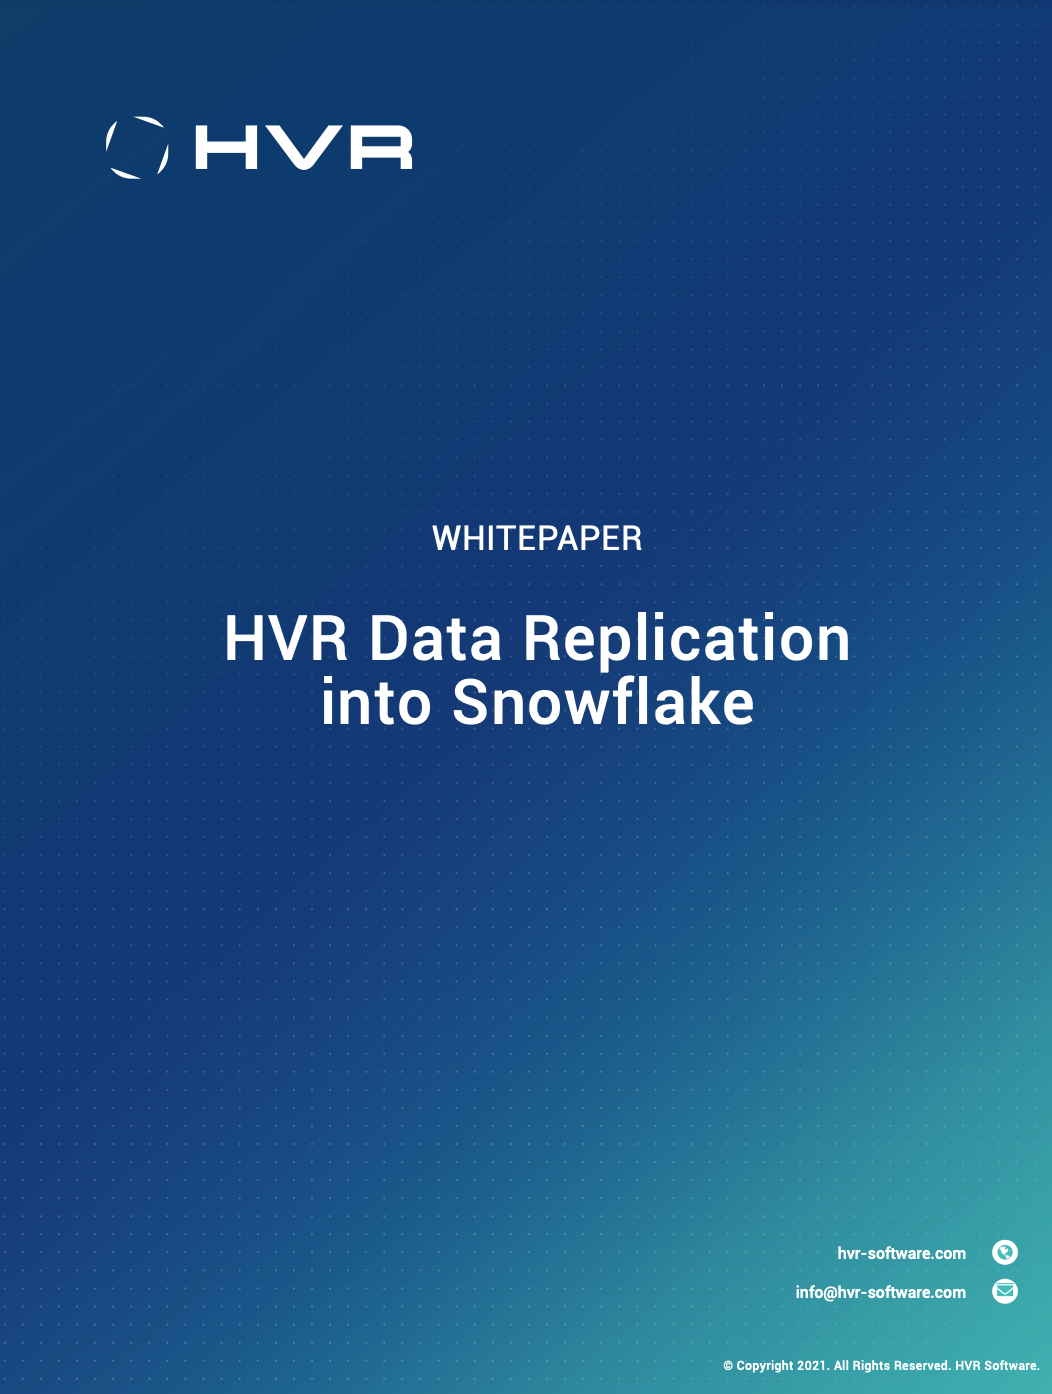 HVR Data Replication with Snowflake